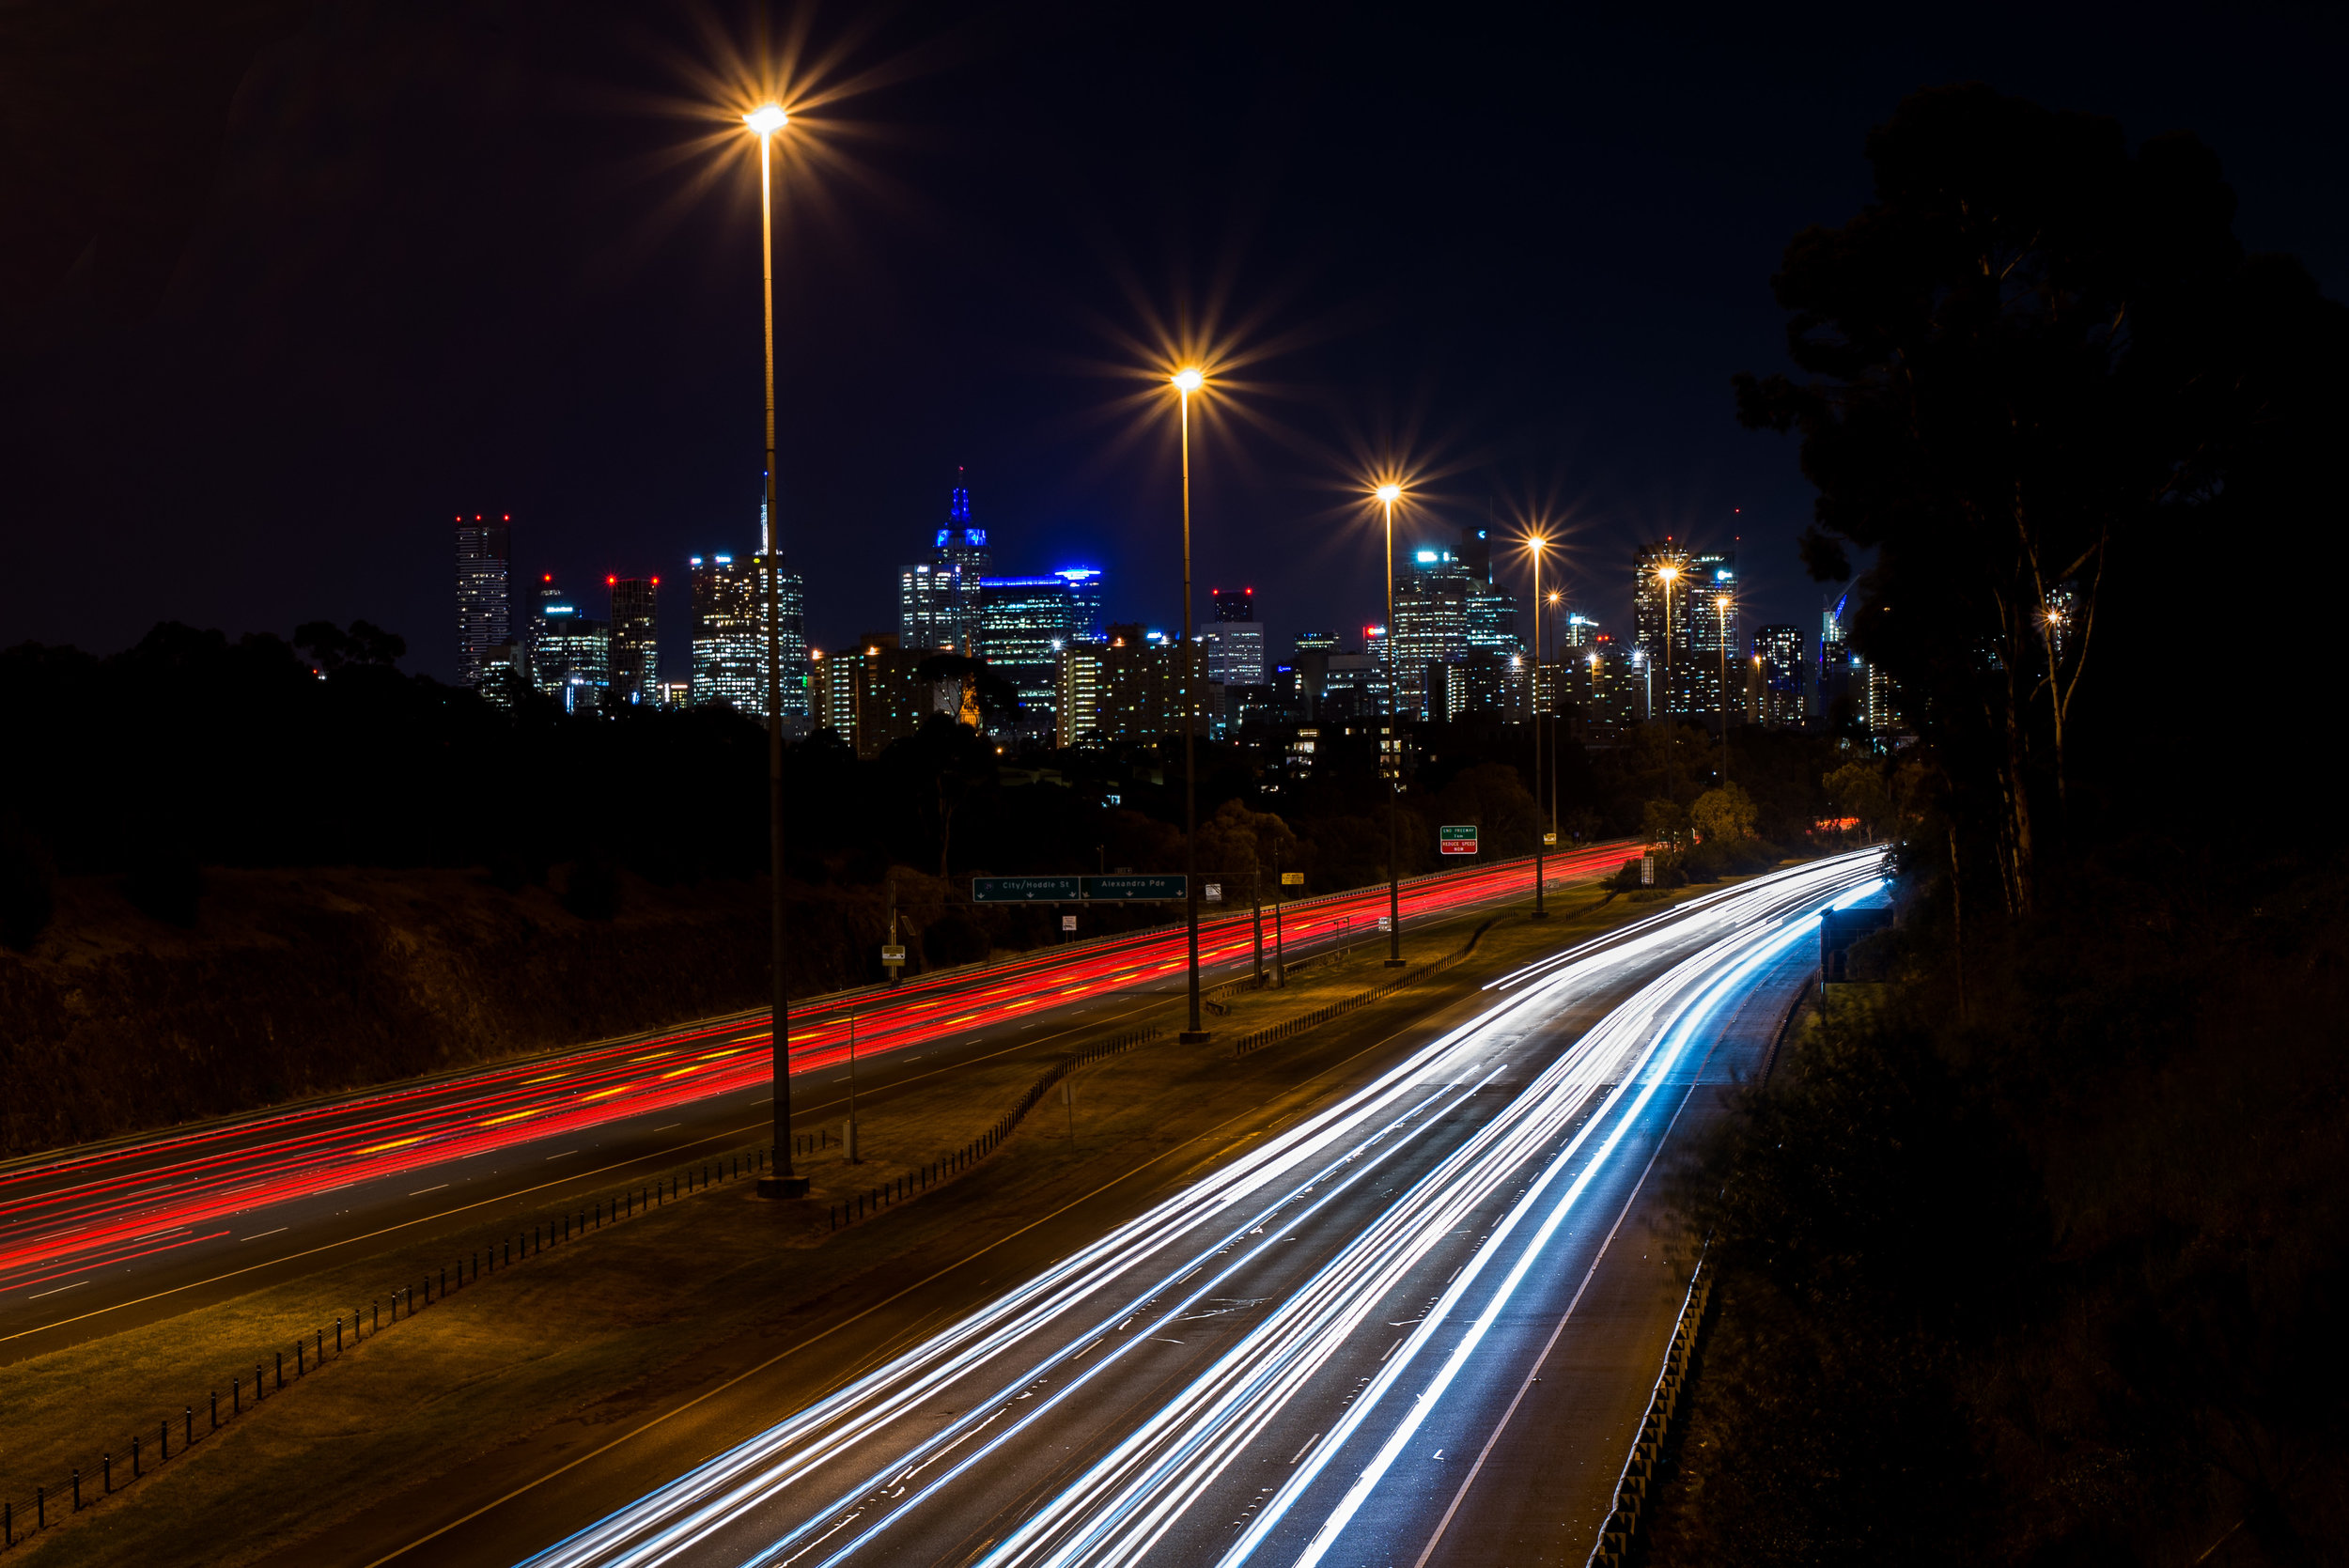 Nikon D610, Nikkor 50 1.8G, 25', ISO-100. Light trails and Melbourne skyline.